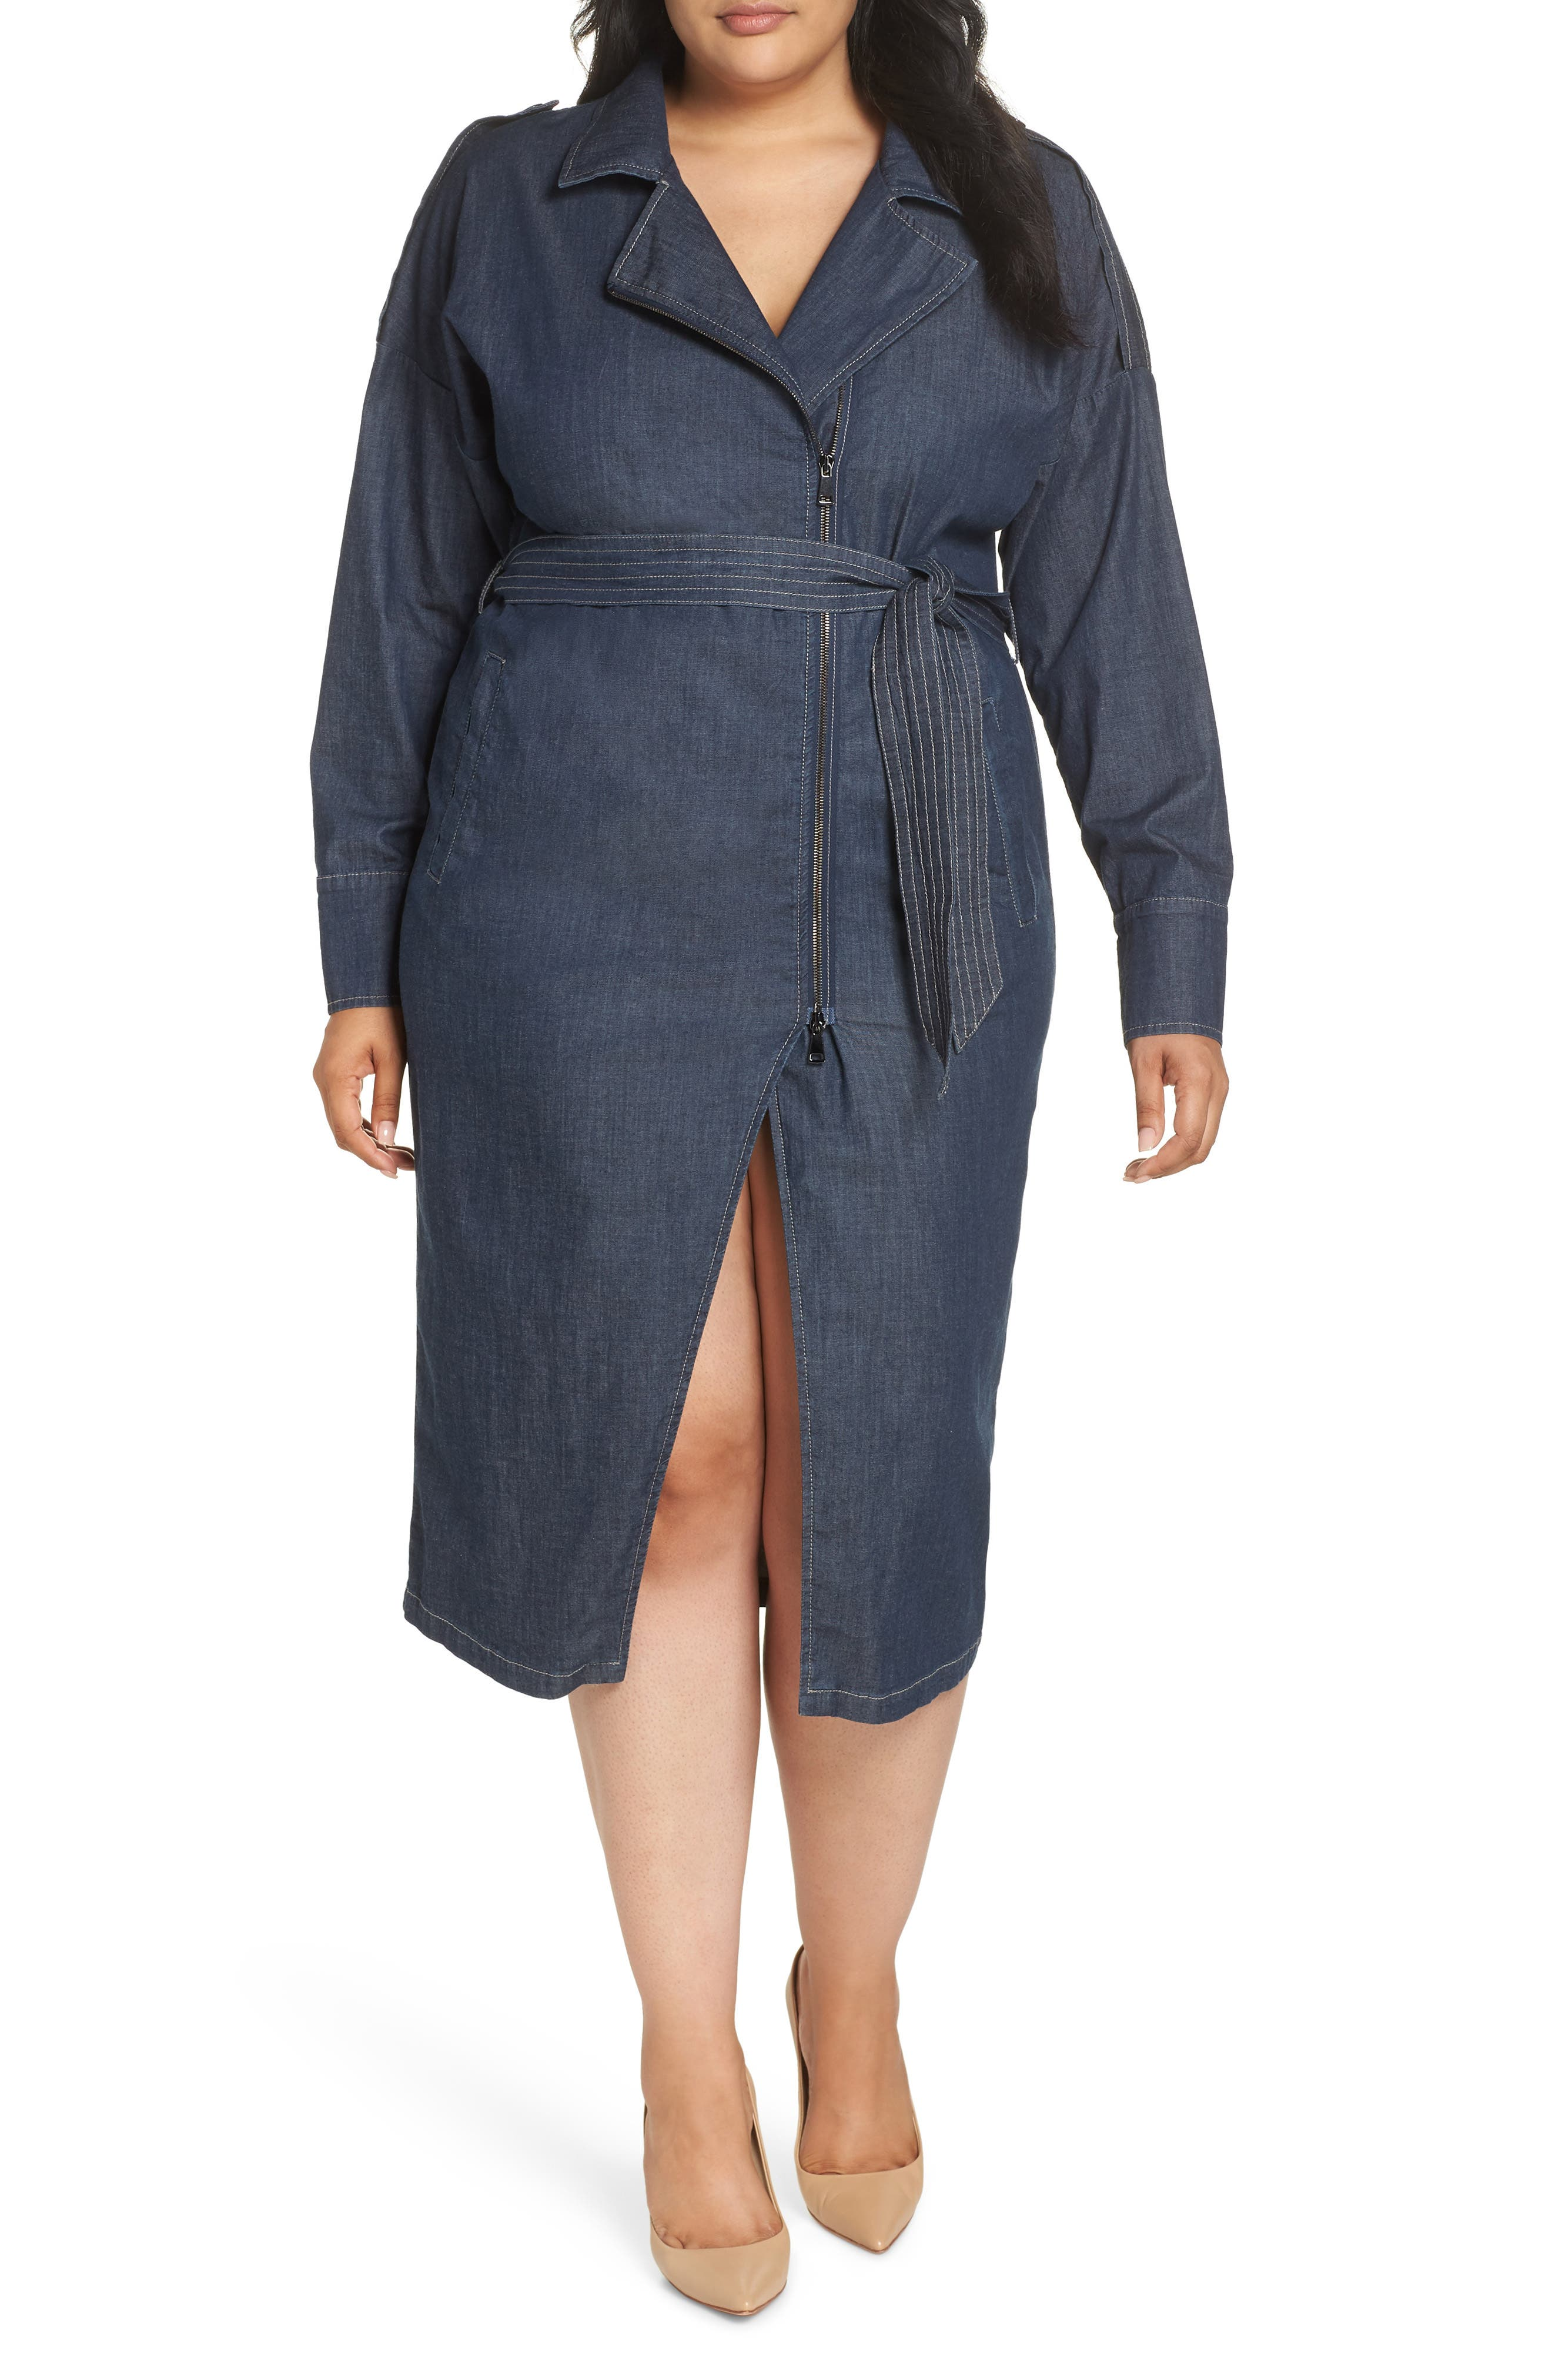 ASHLEY GRAHAM X MARINA RINALDI Decuria Denim Shirtdress in Navy Blue 2